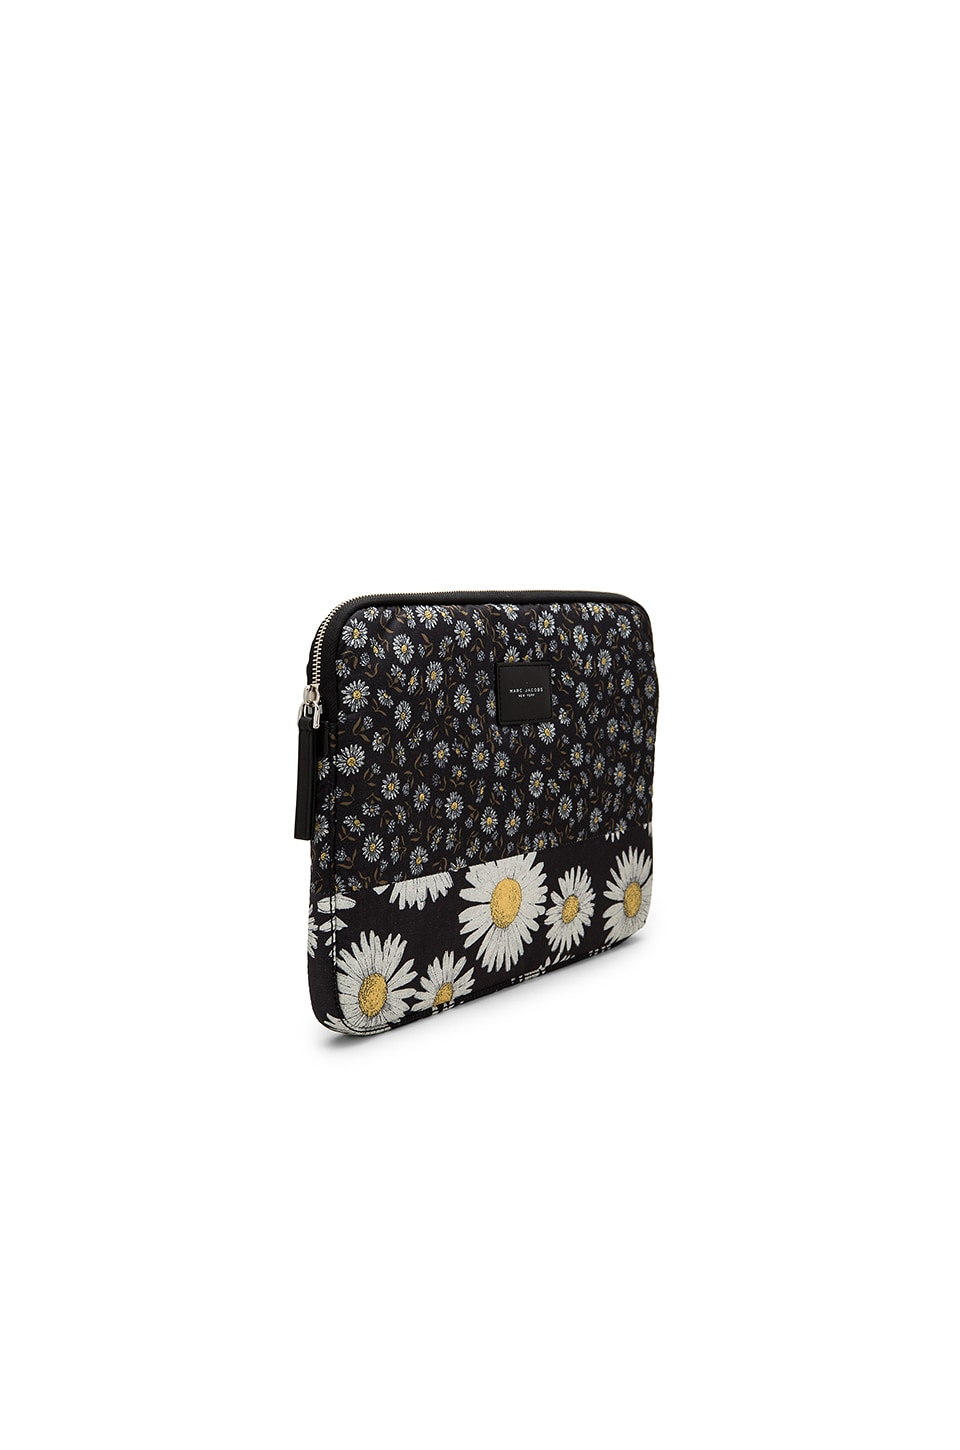 "Marc Jacobs Mixed Daisy 13"" Computer Case in Black Multi"